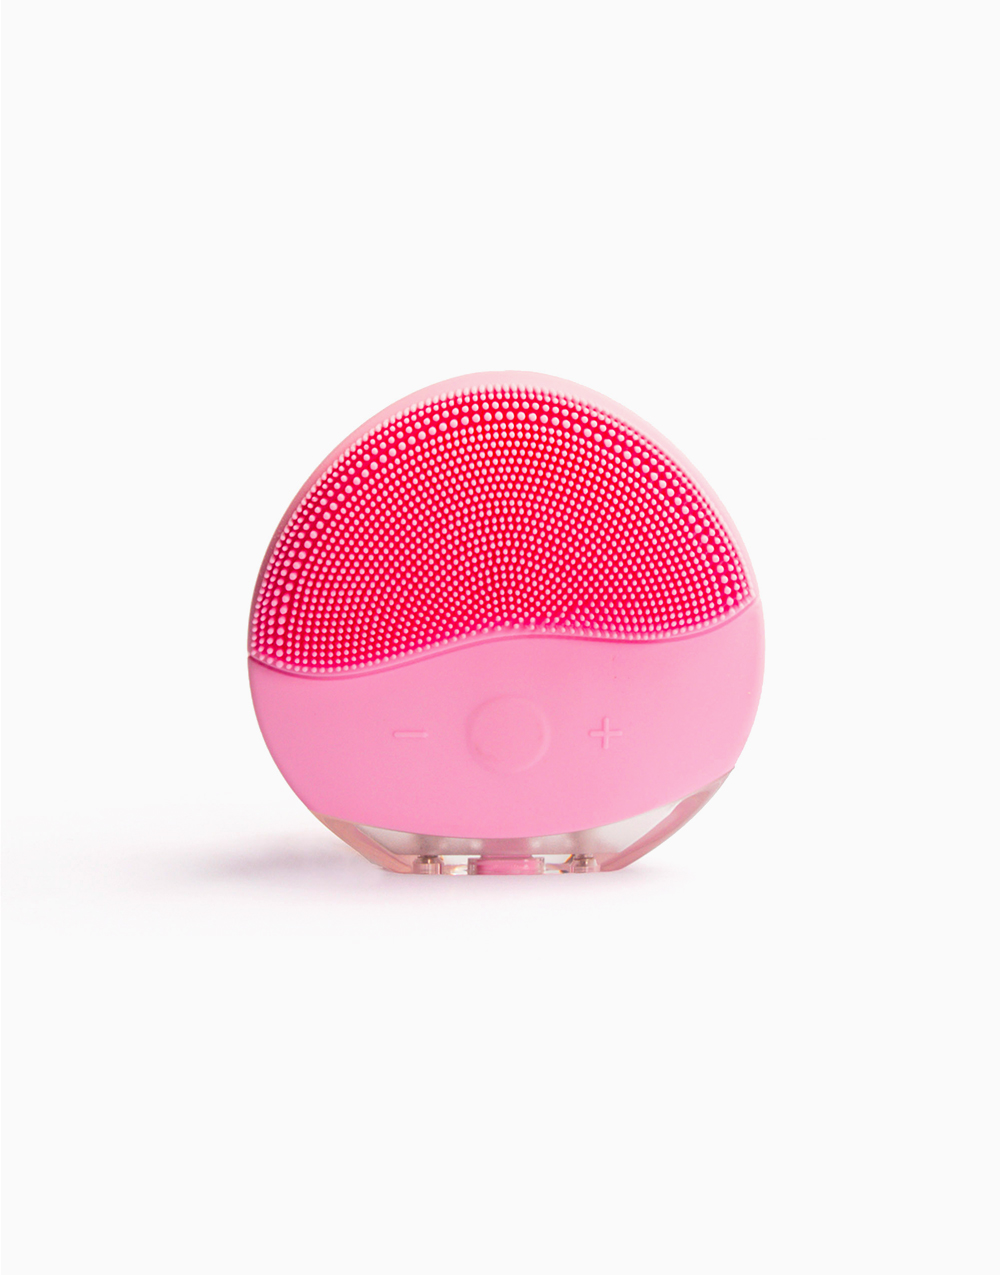 Facial Cleansing Brush by The Facialist   Pink